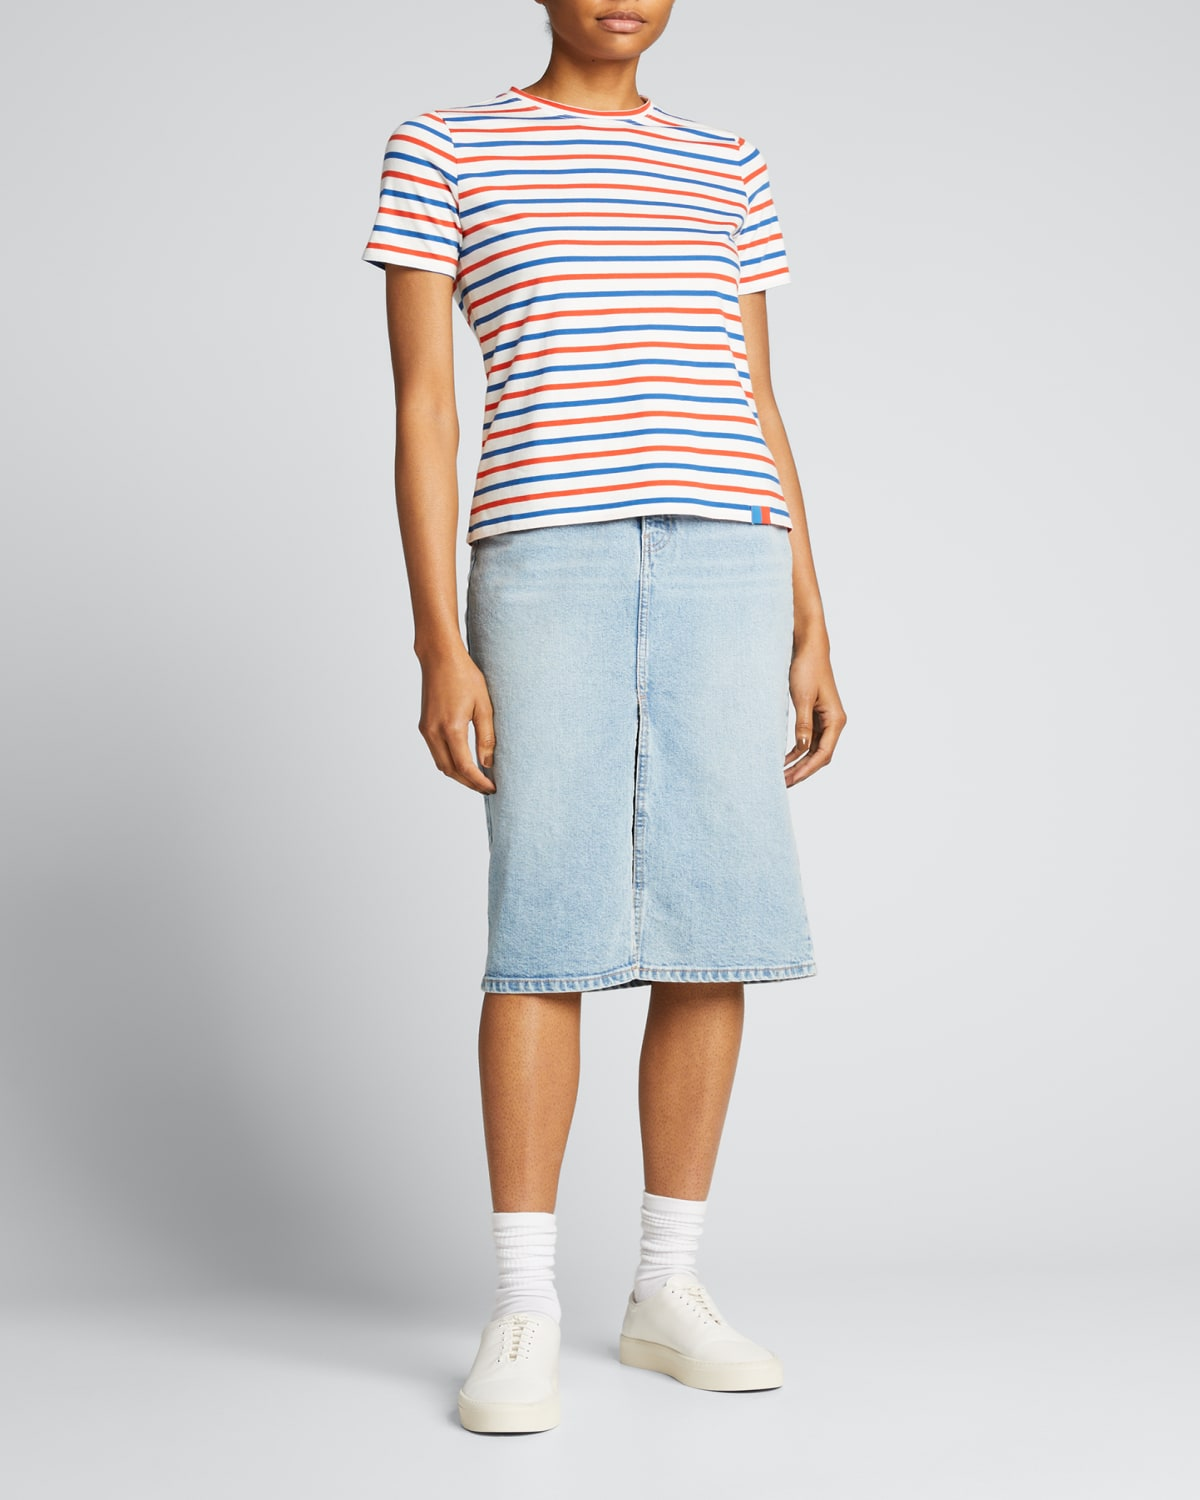 The Modern Short-Sleeve Striped Top